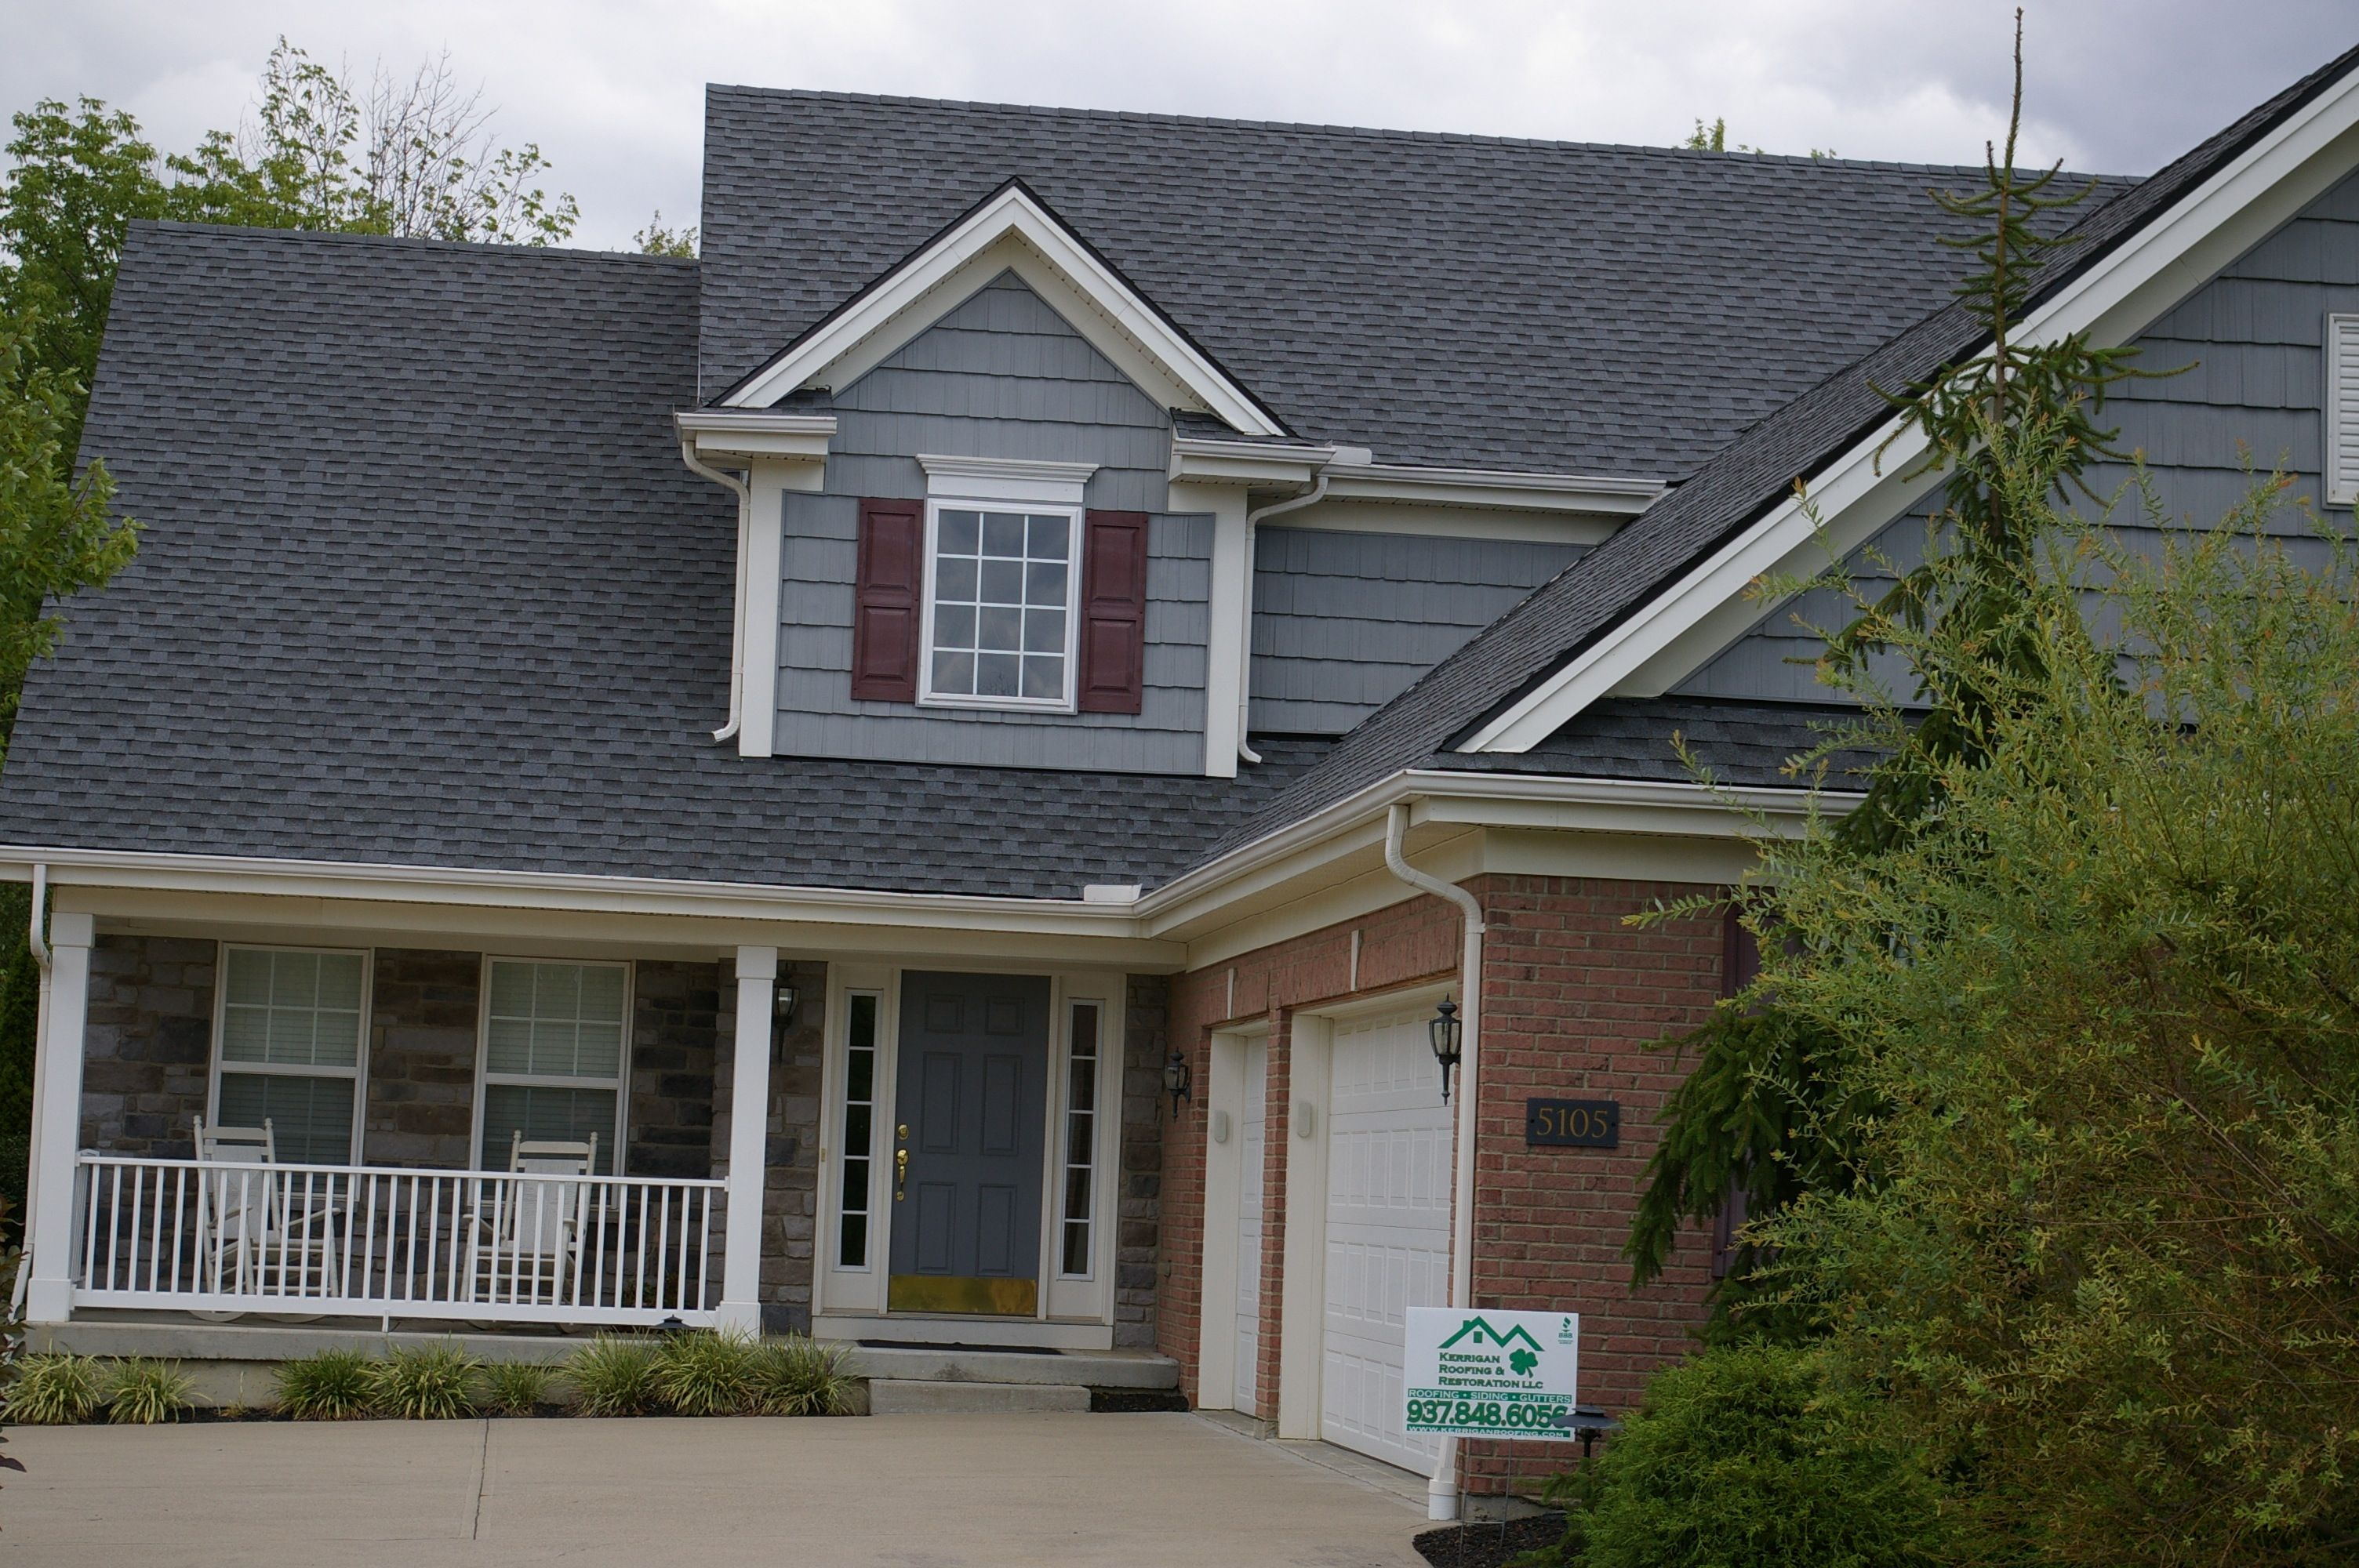 Commercial Residential Roofers Columbus Ohio Kerrigan Roofing Photo Gallery Roof Design Roof Architecture Modern Roofing